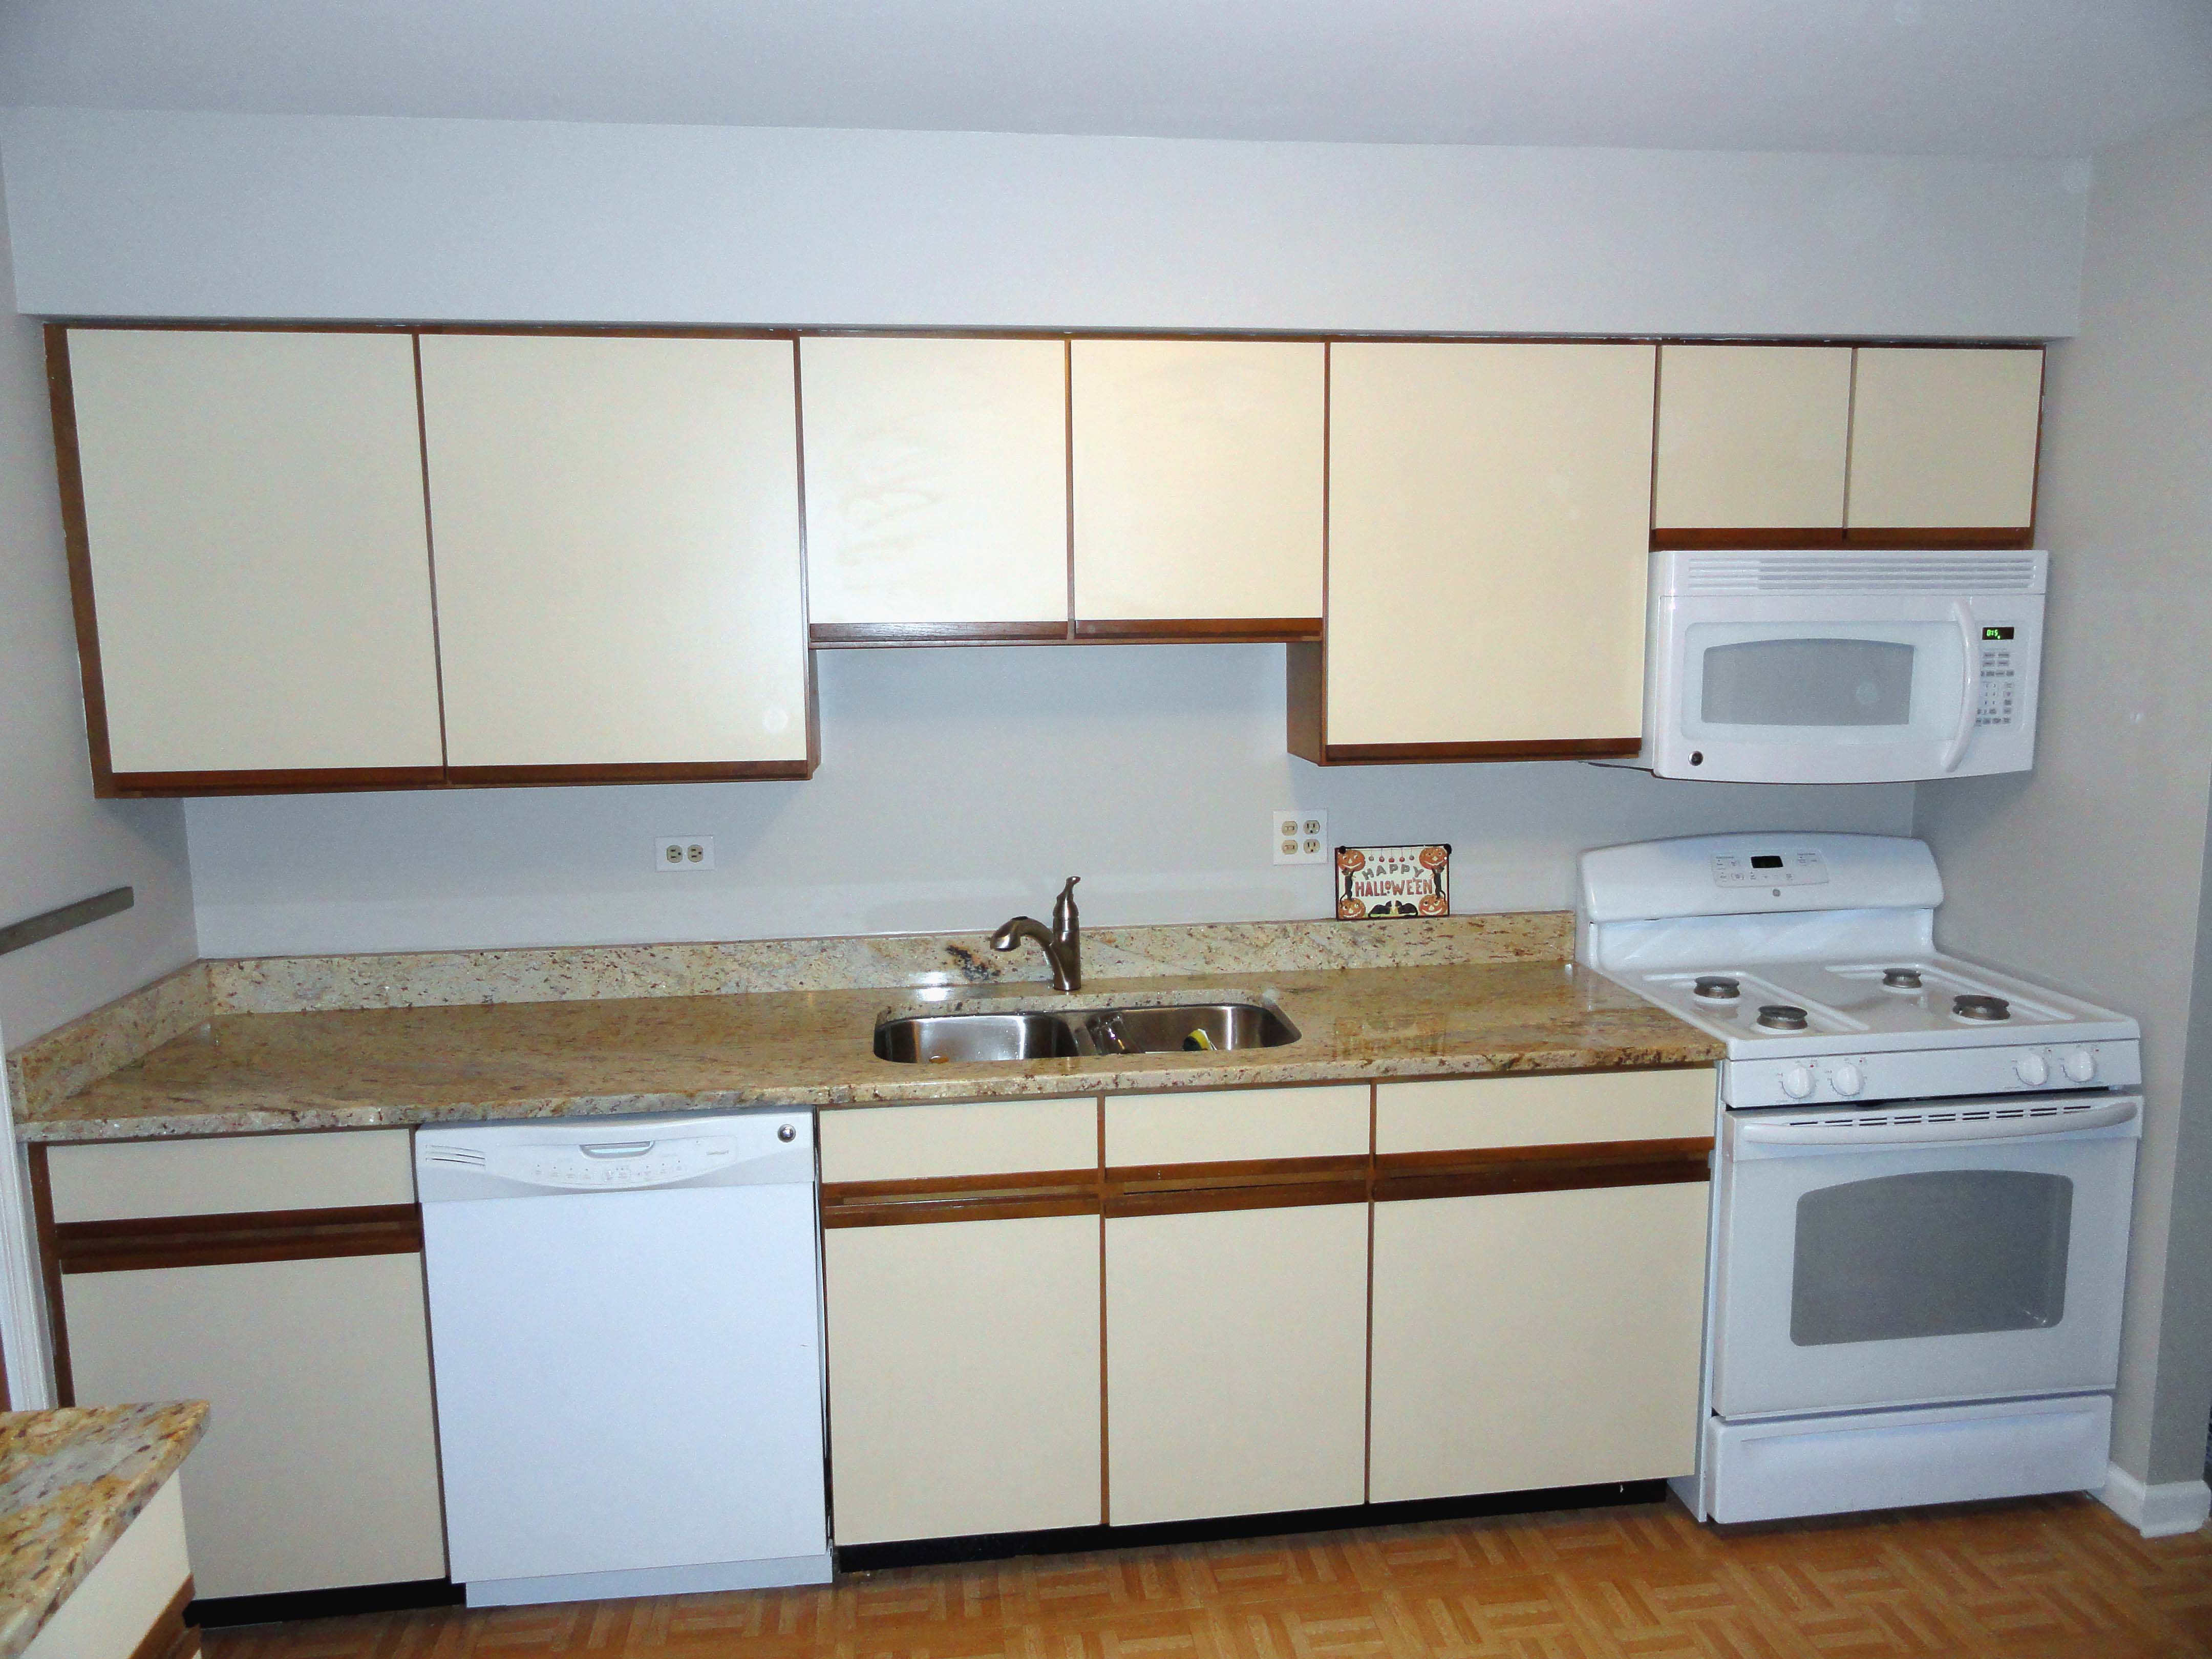 popular cabinet styles 70s 80s 90s wholesale kitchen cabinets